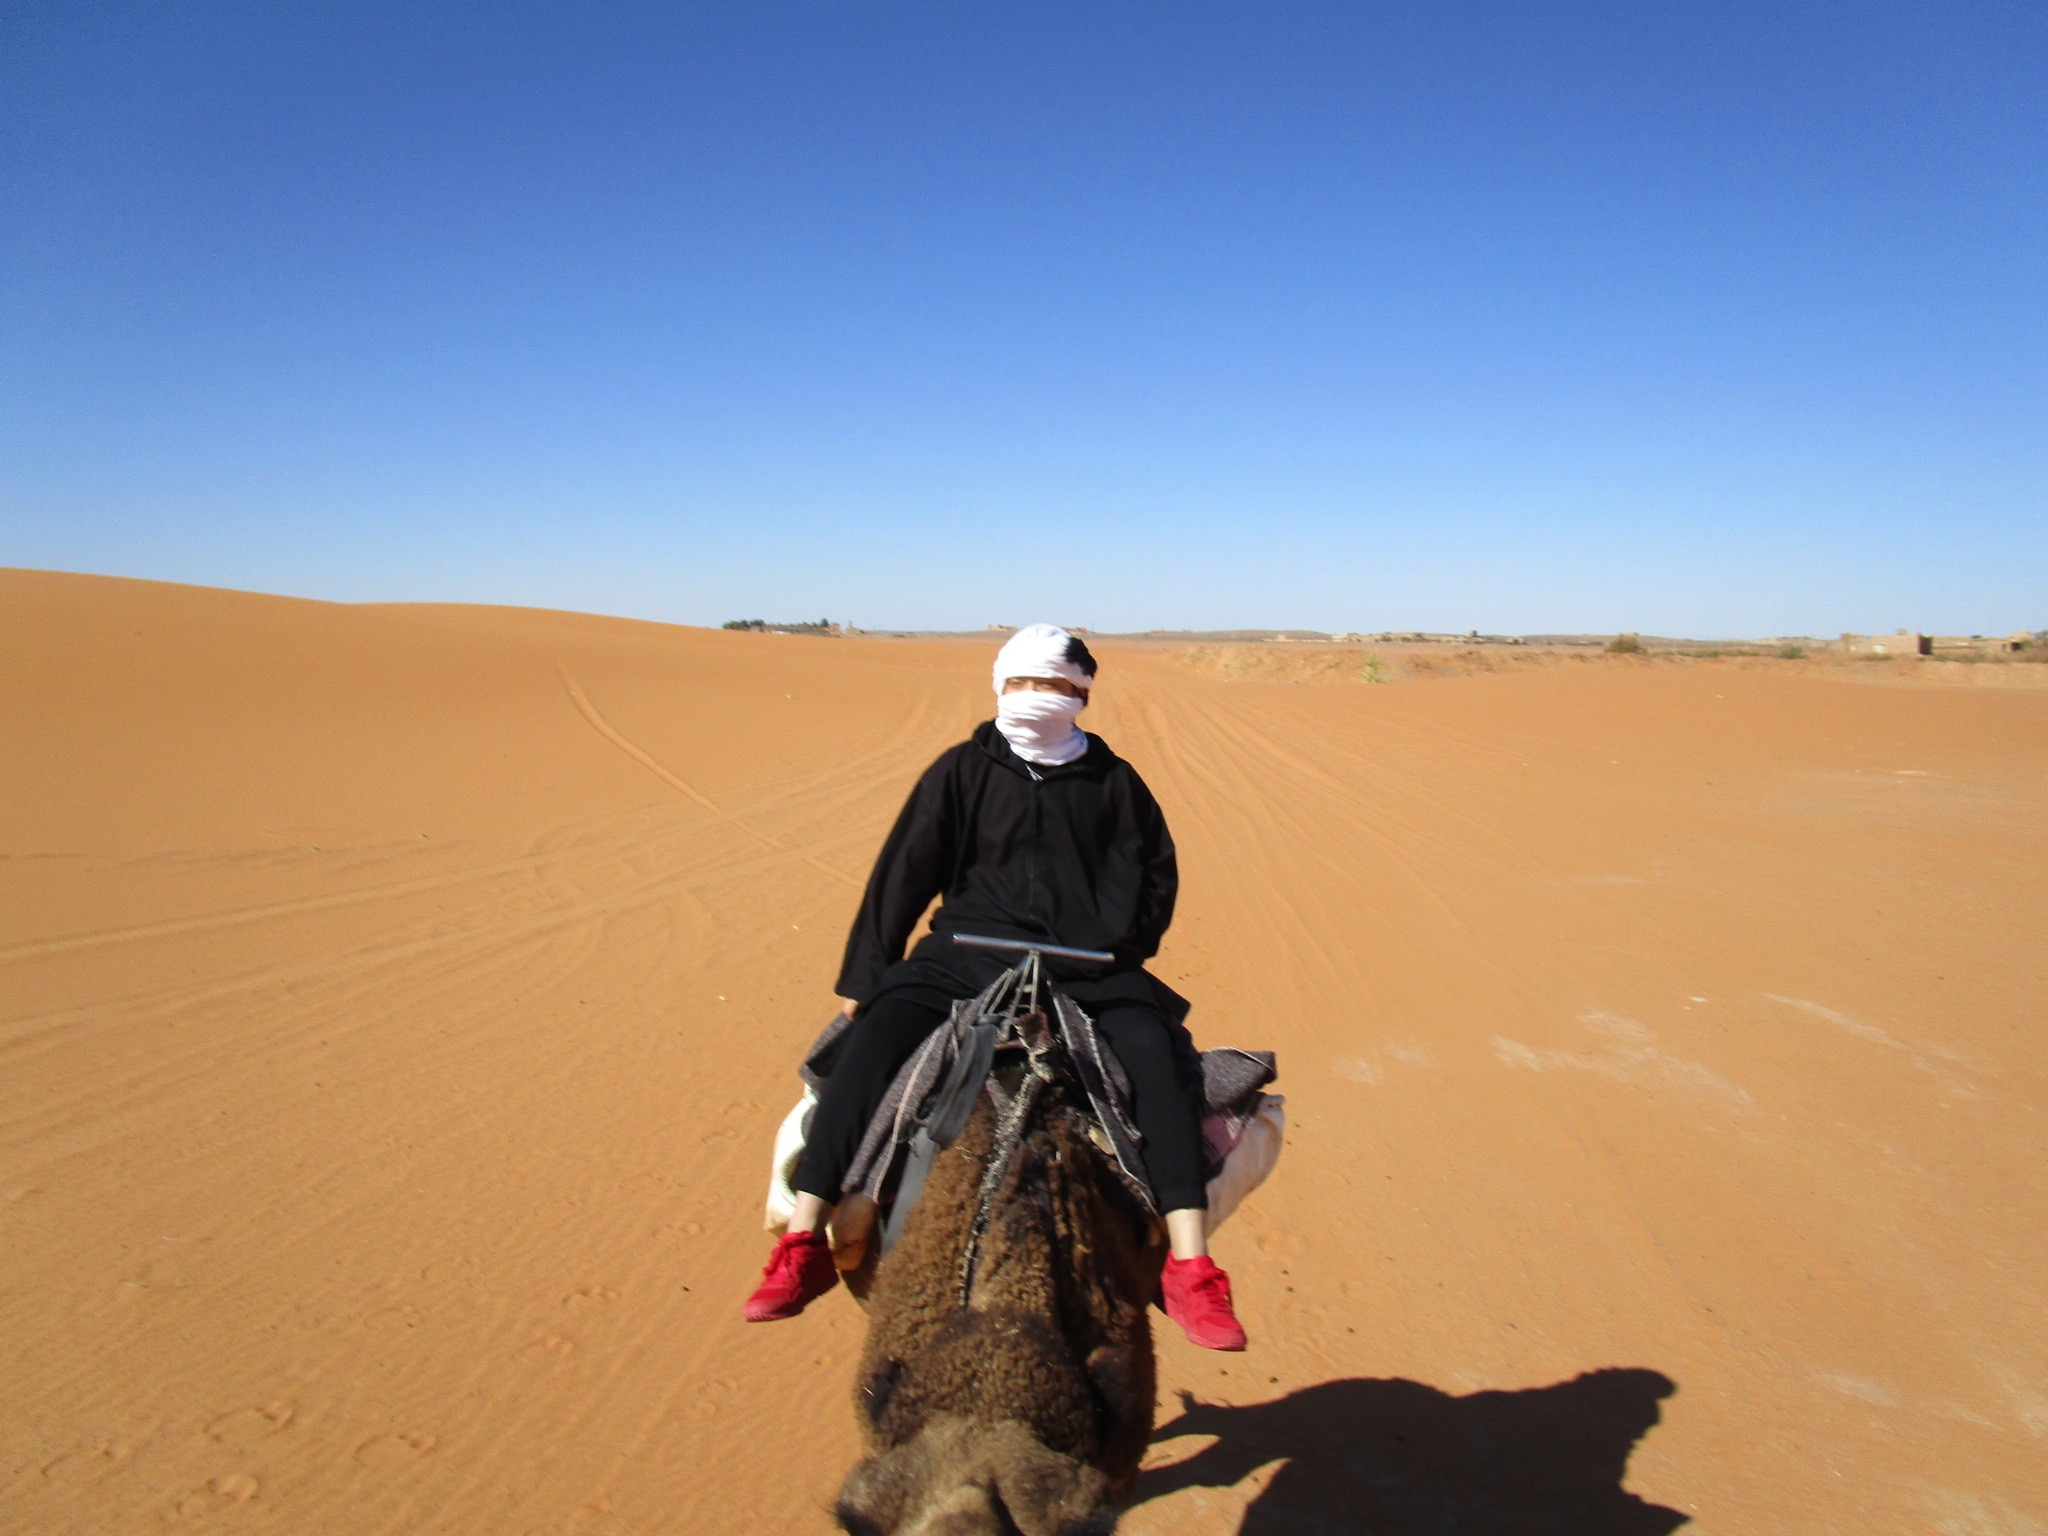 riding on camel